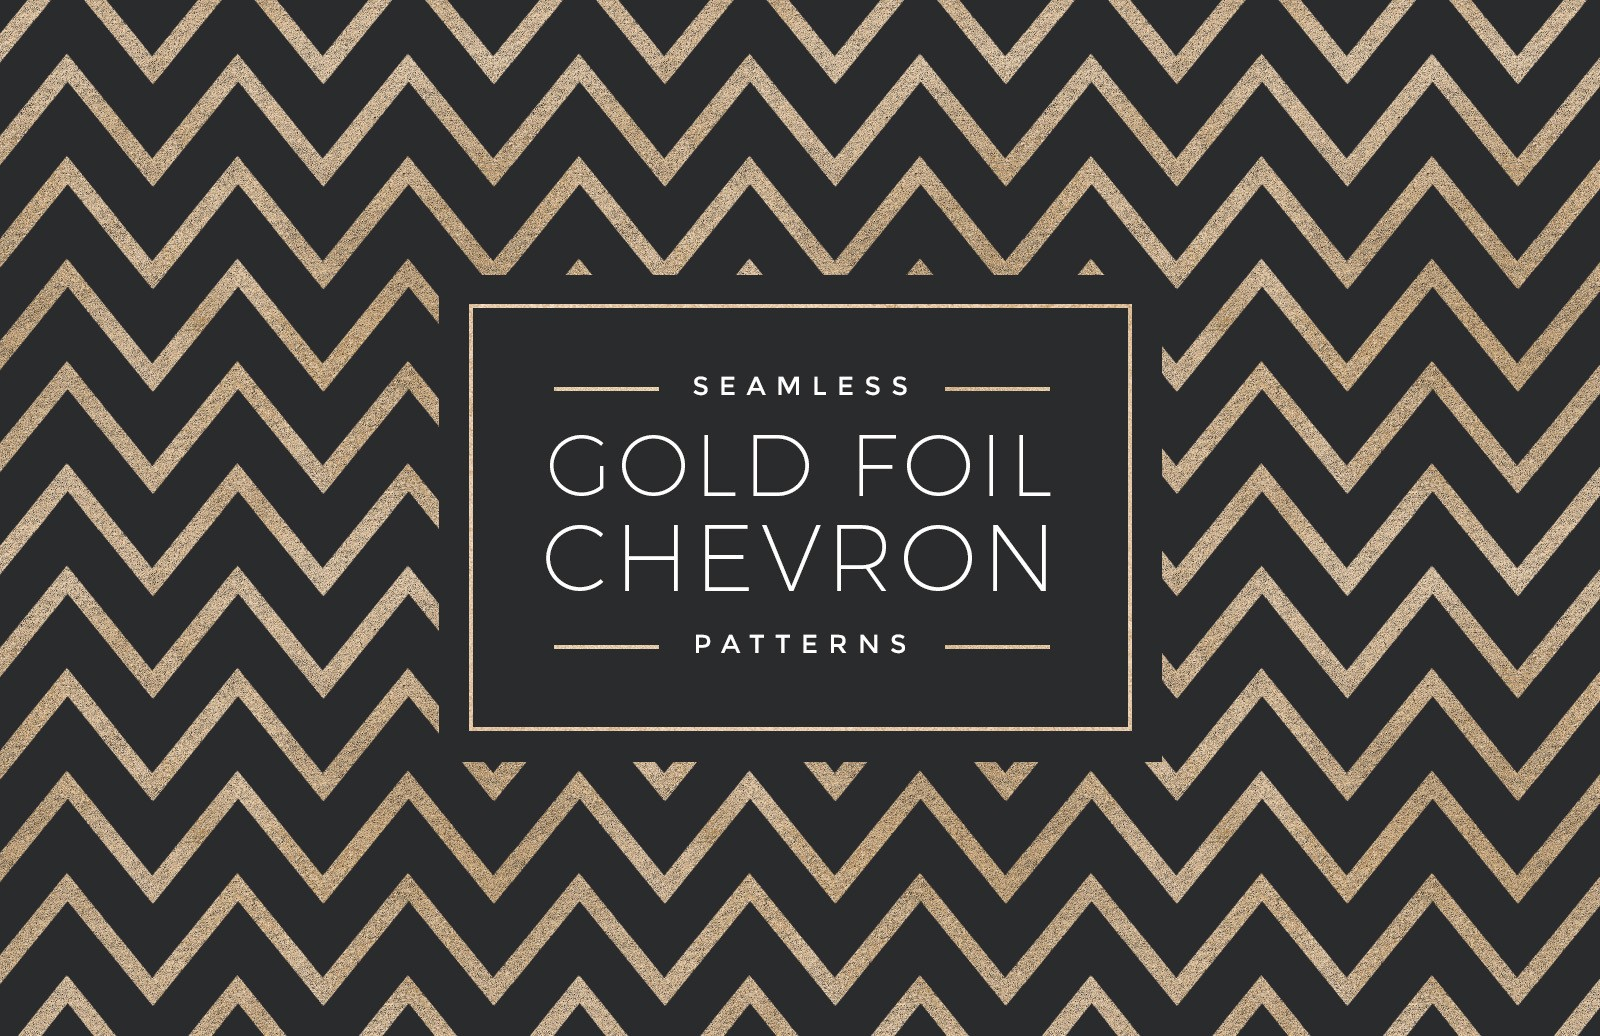 Seamless Gold Foil Chevron Patterns